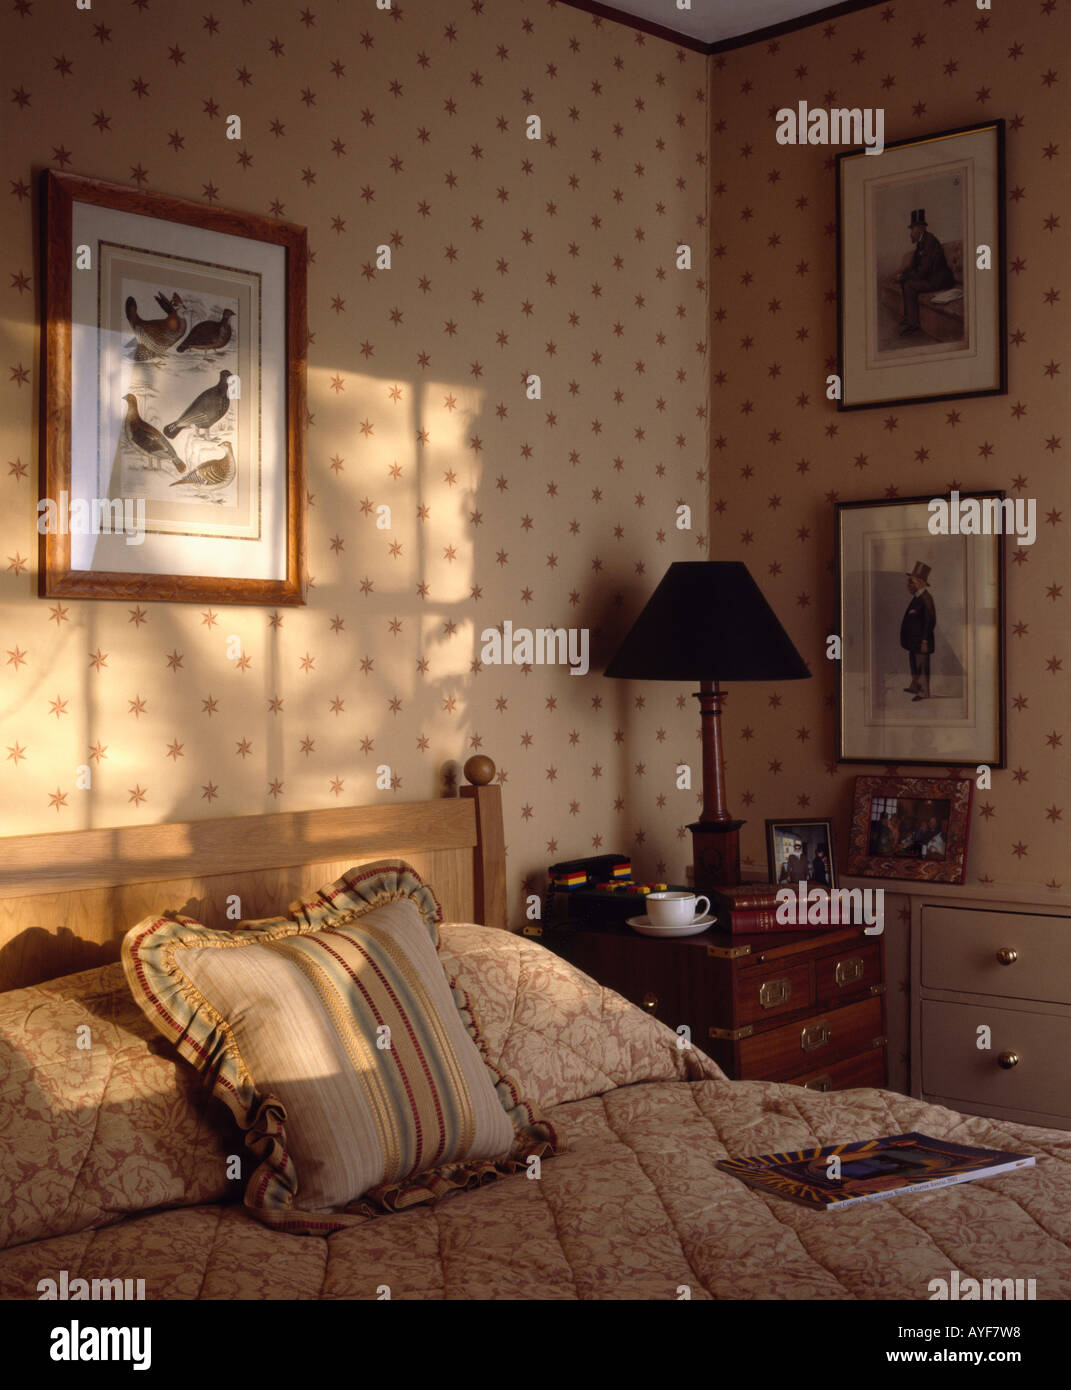 Wallpaper in neutral bedroom with cushions on bed stock for Neutral bedroom wallpaper